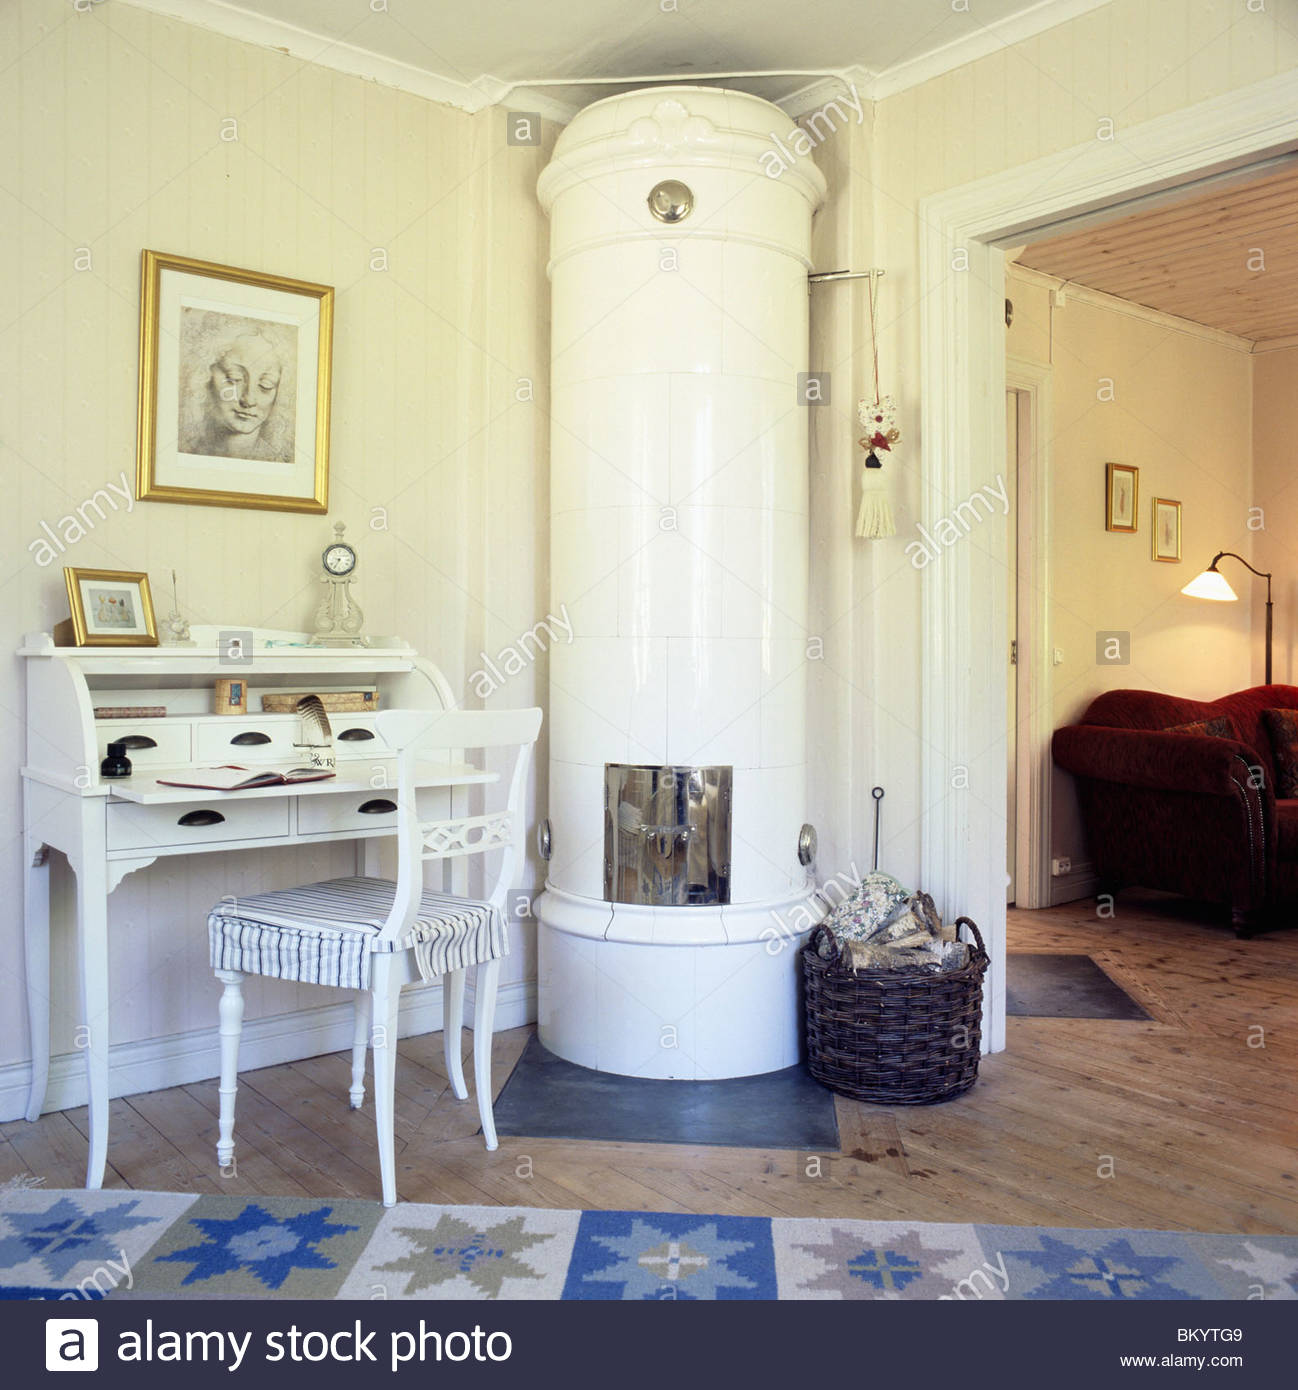 swedish tiled stove in a livingroom of a cottage with a traditional ...